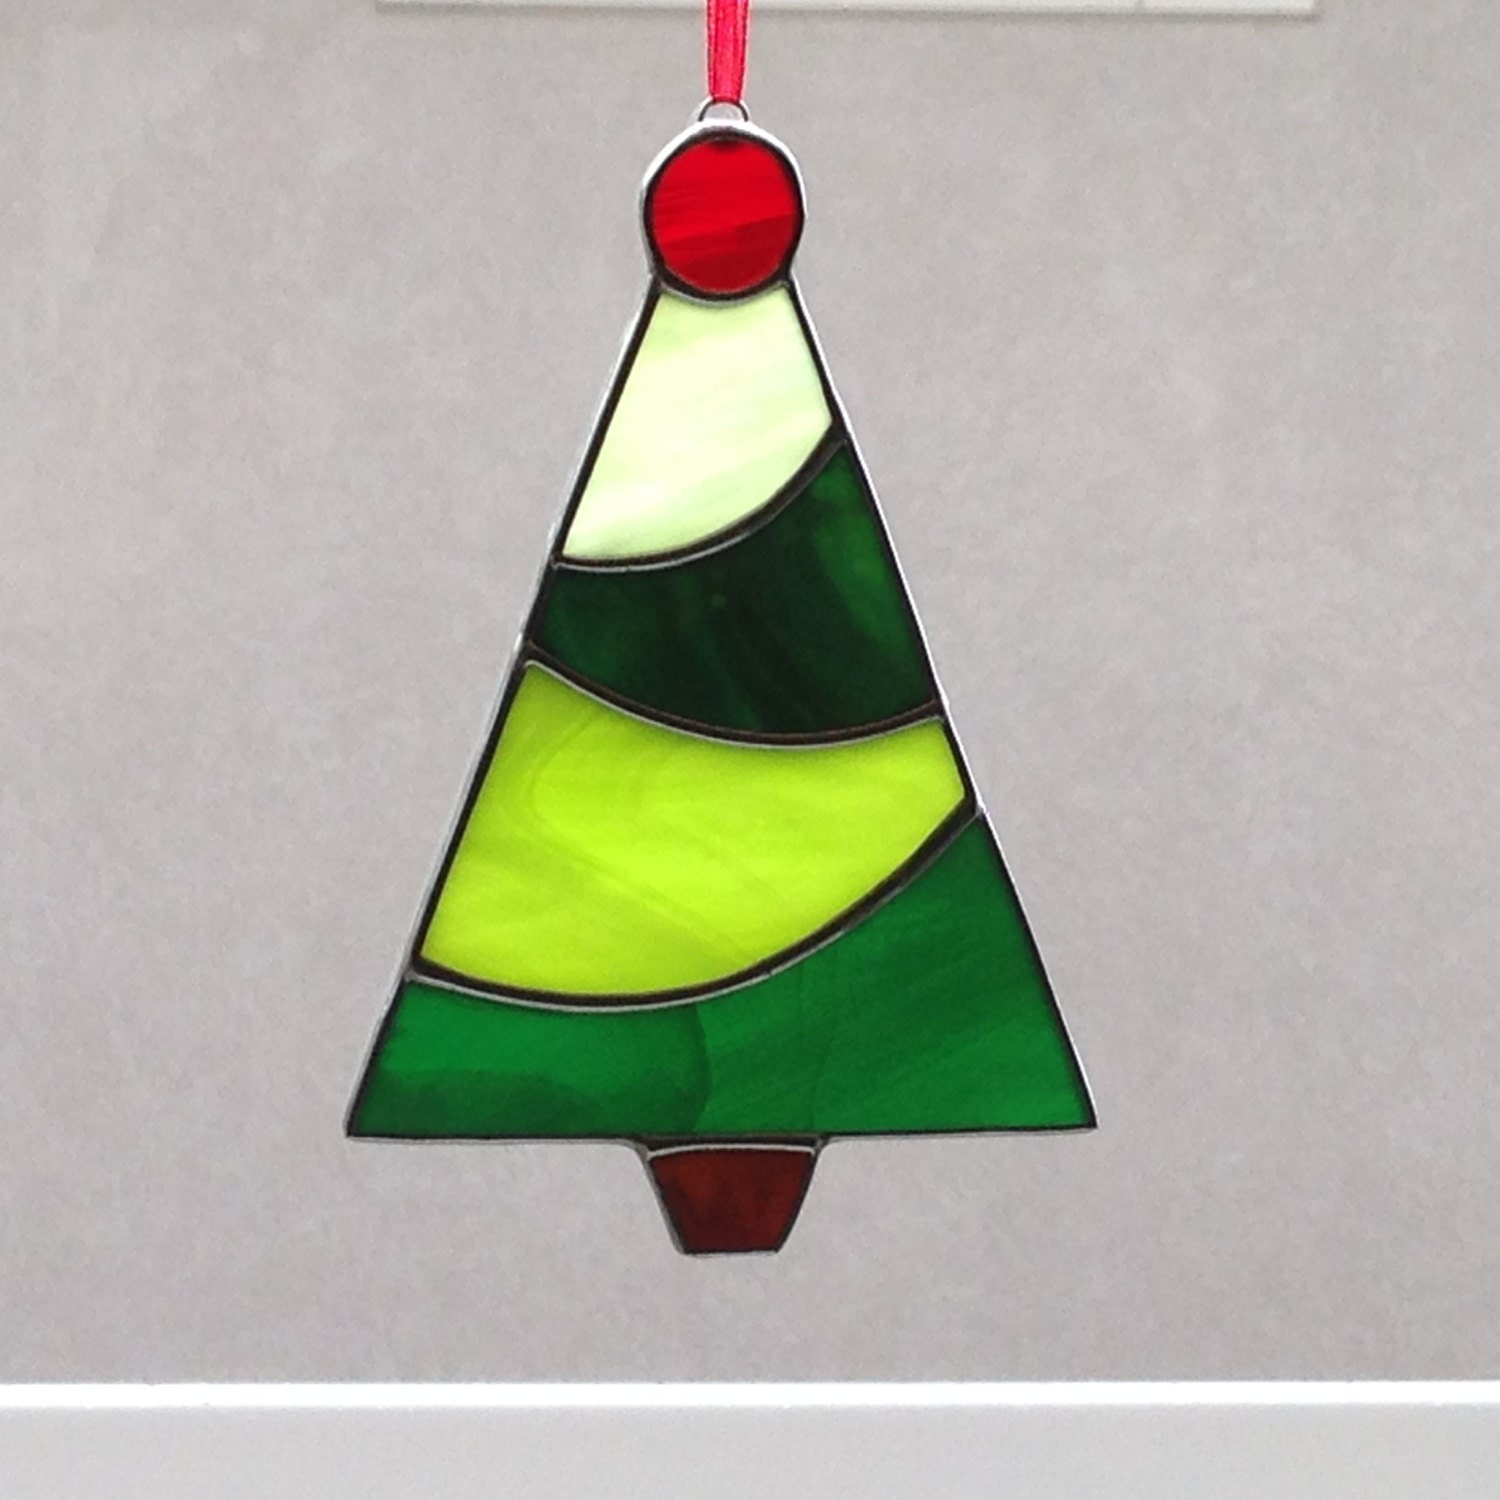 how to make fake stained glass ornaments